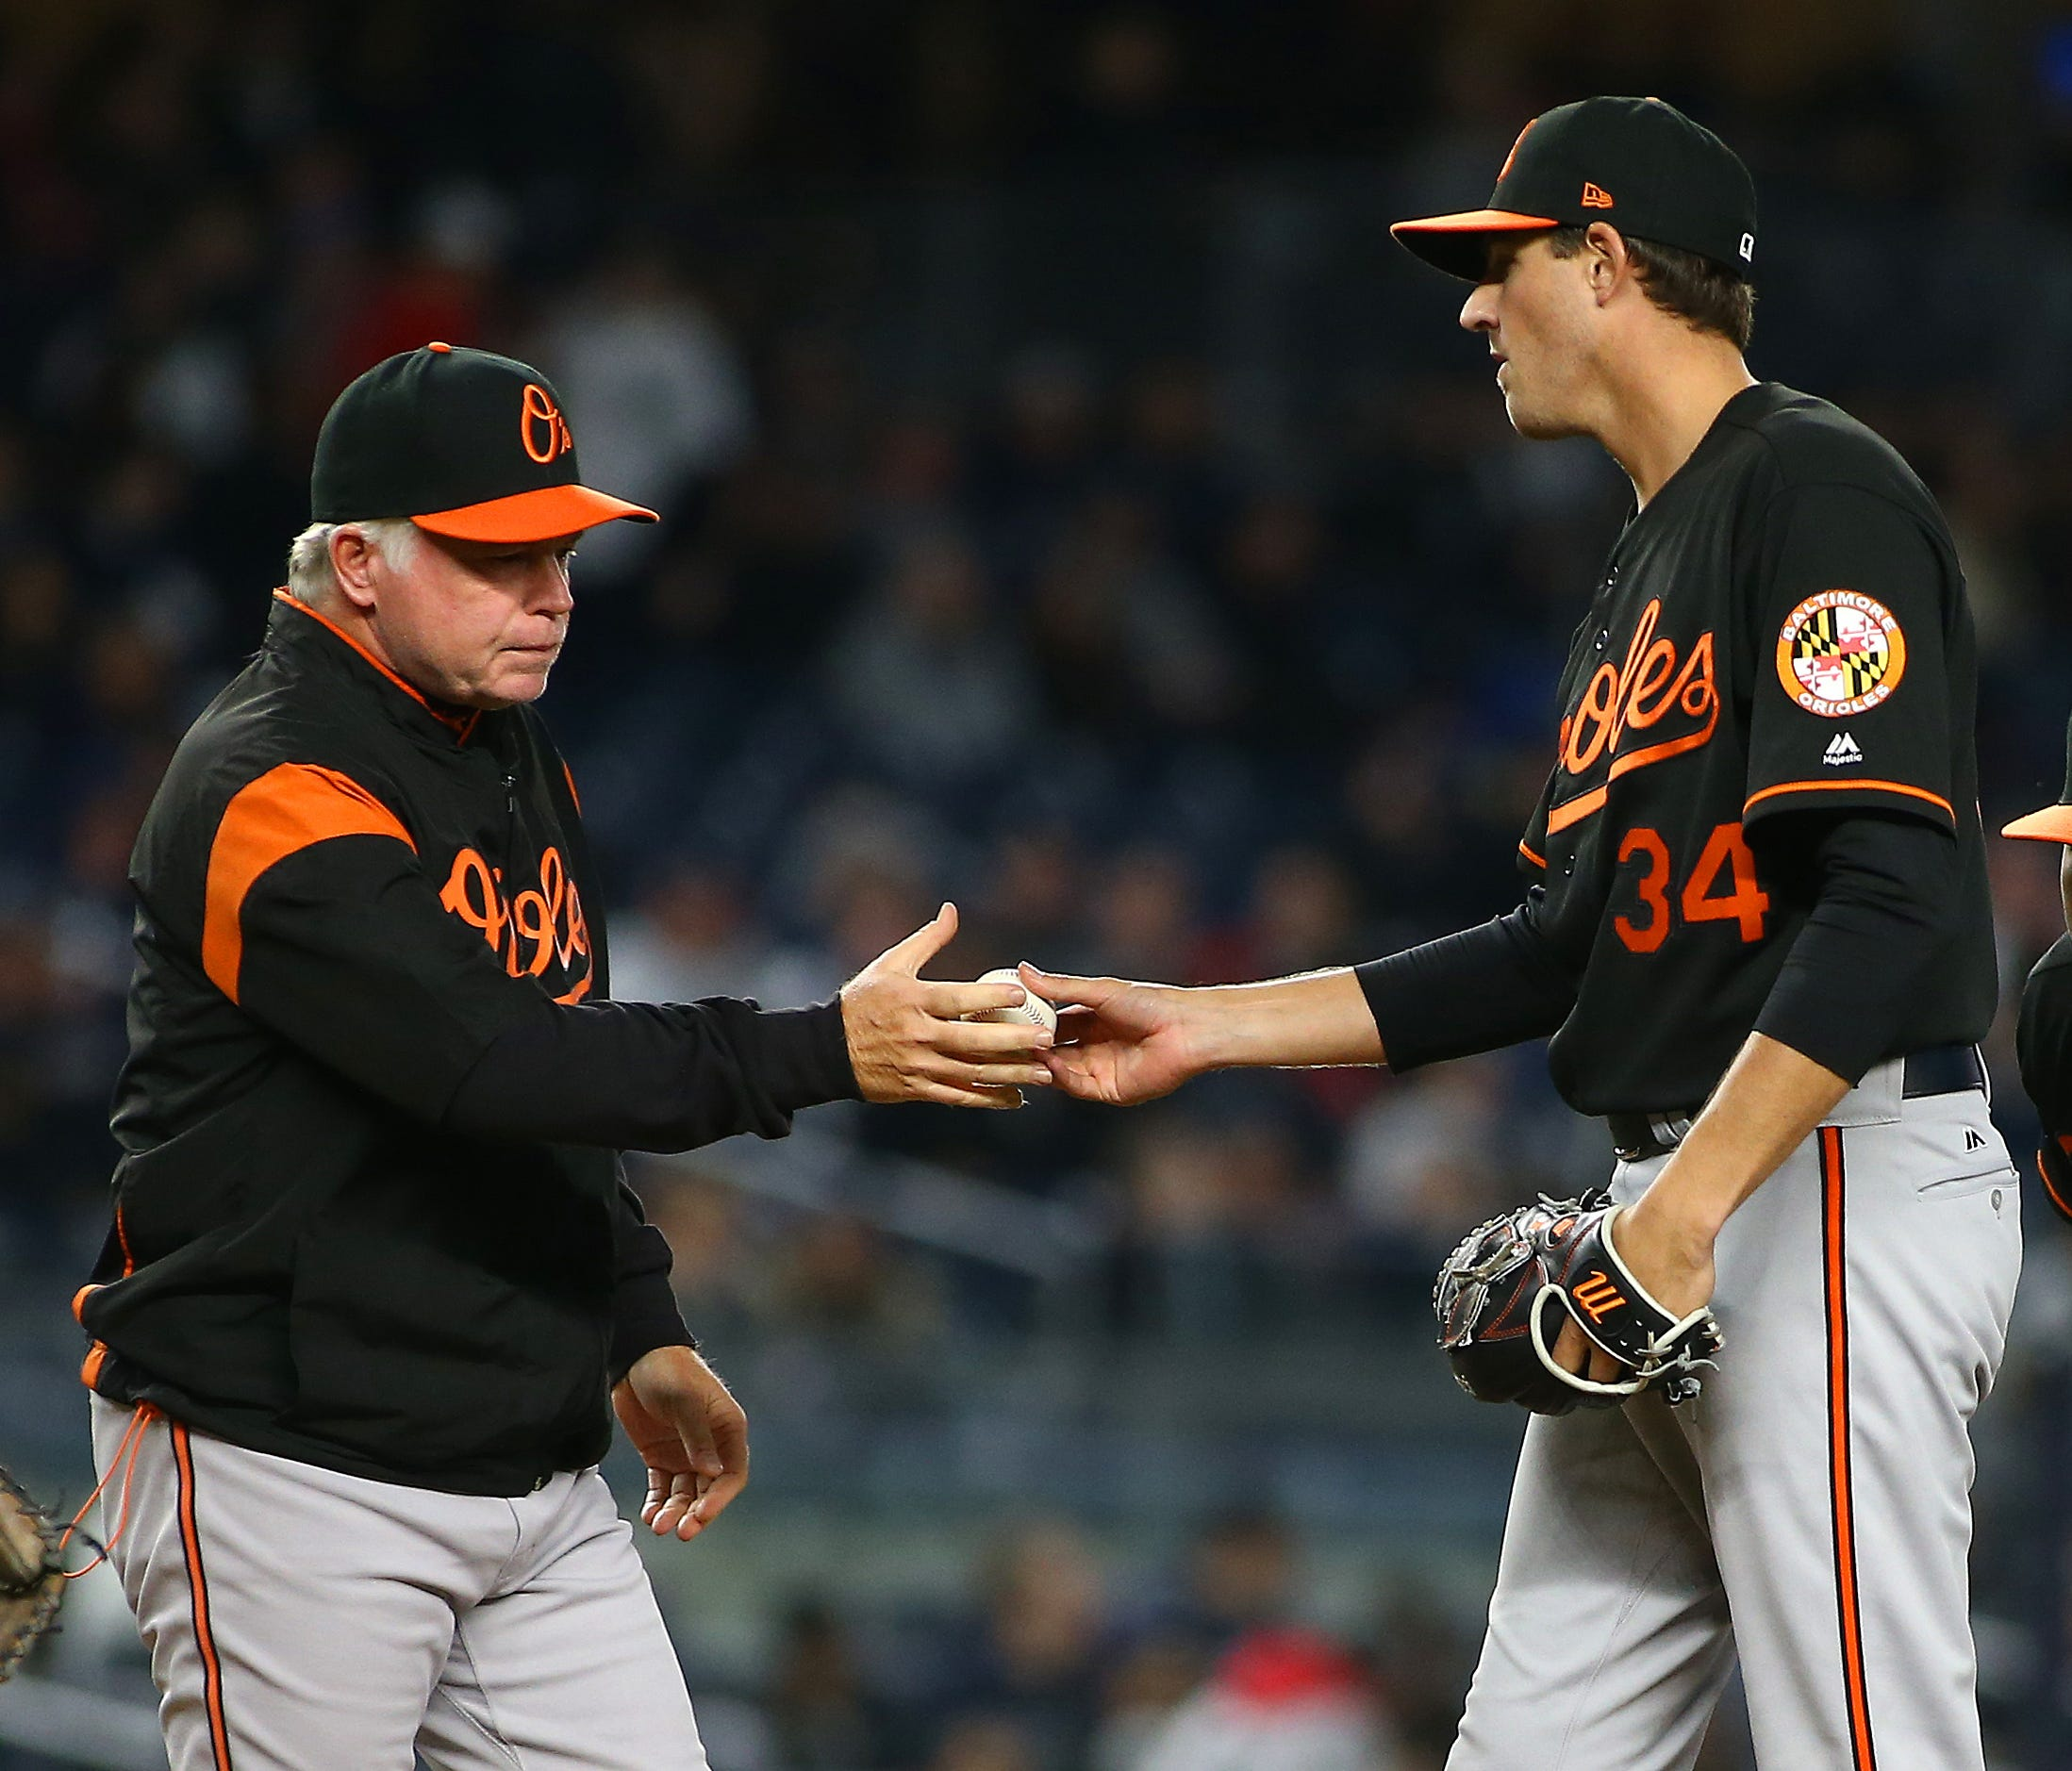 Orioles manager Buck Showalter takes the ball from starting pitcher Kevin Gausman.